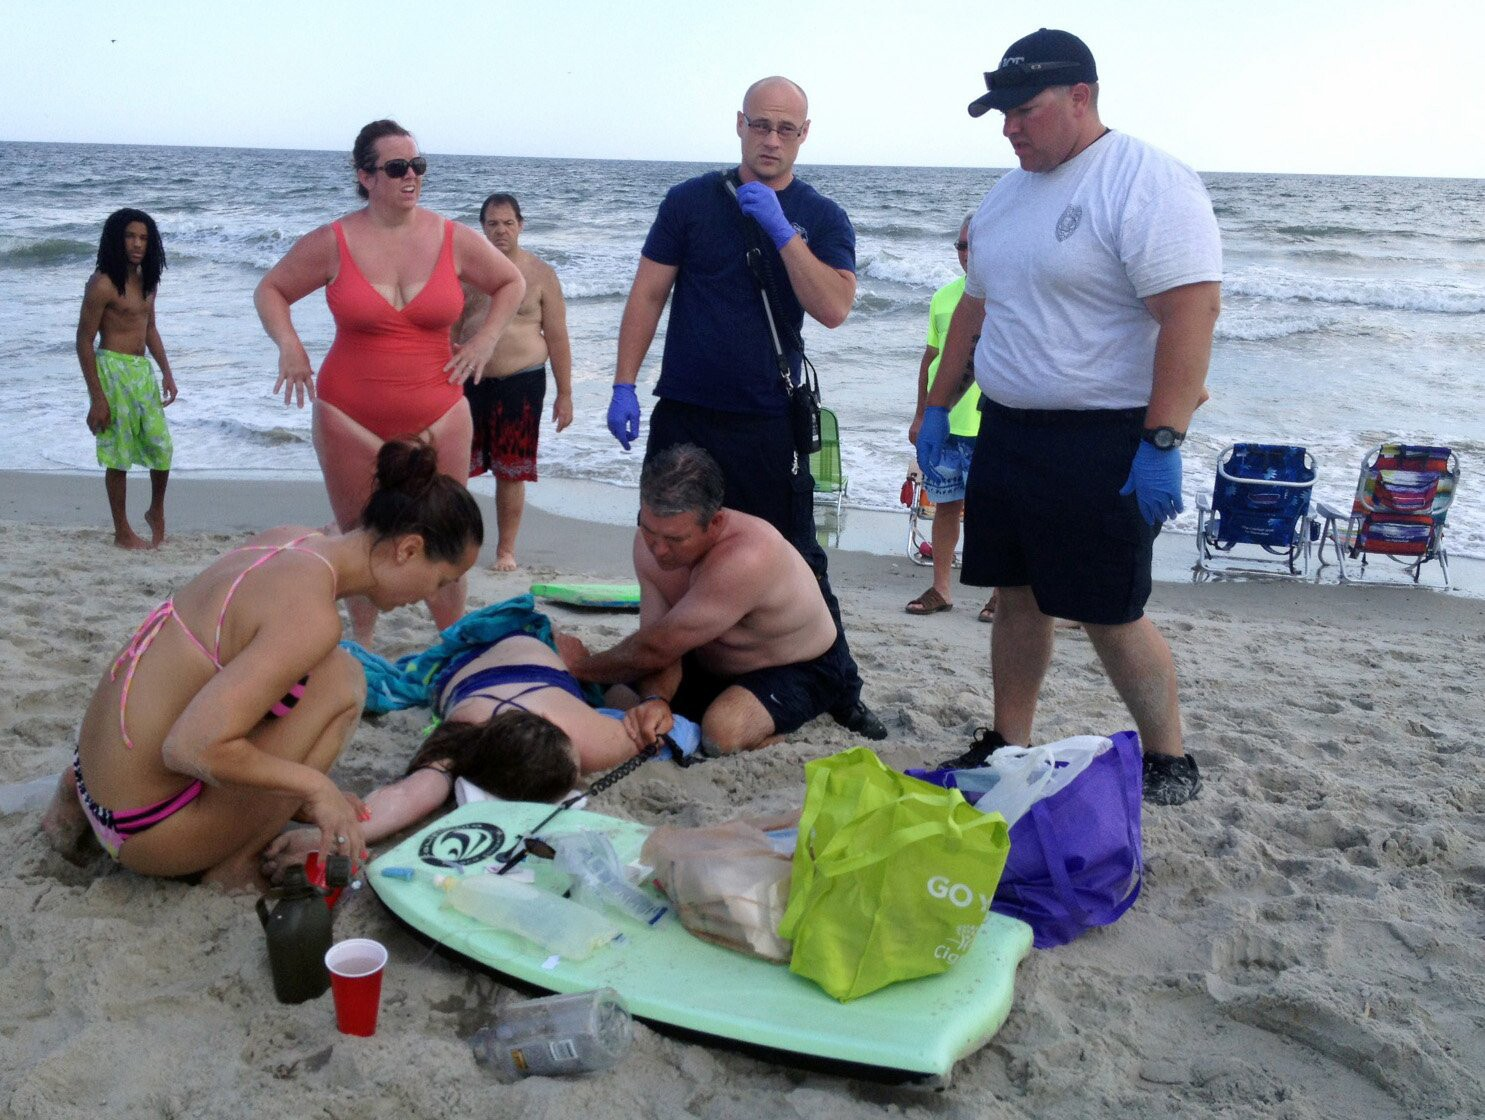 Recent Spike In Shark Attacks Reported Off Carolinas Coast Los Angeles Times